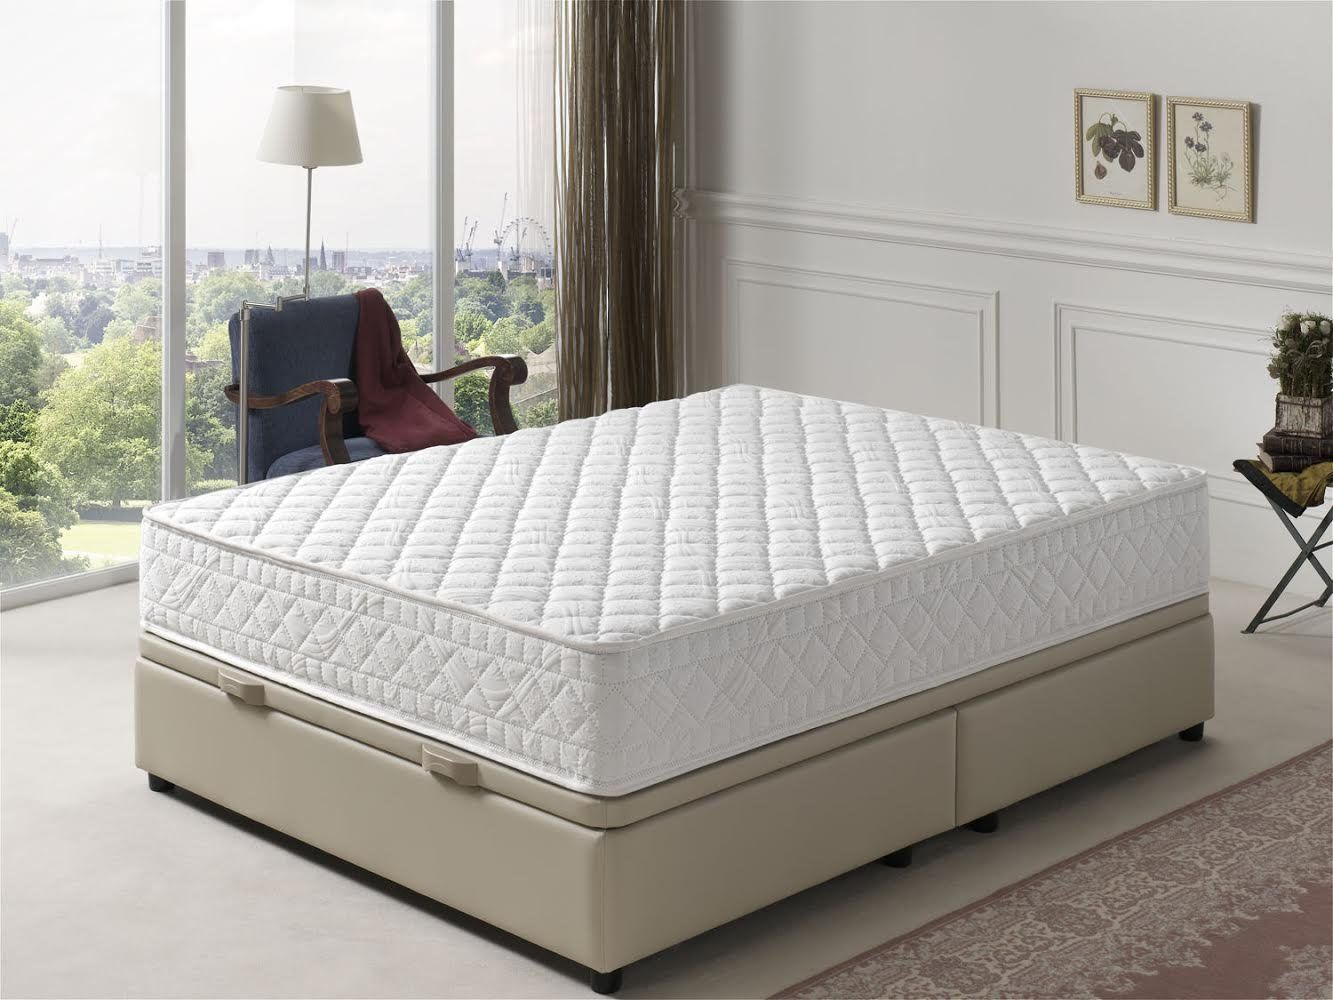 Simpur Relax Matelas 120x190 Cm Dermo Therapie Memoire De Forme Epaisseur 25 Cm Matiere Naturelle Independance De Couchage Er In 2020 Furniture Mattress Home